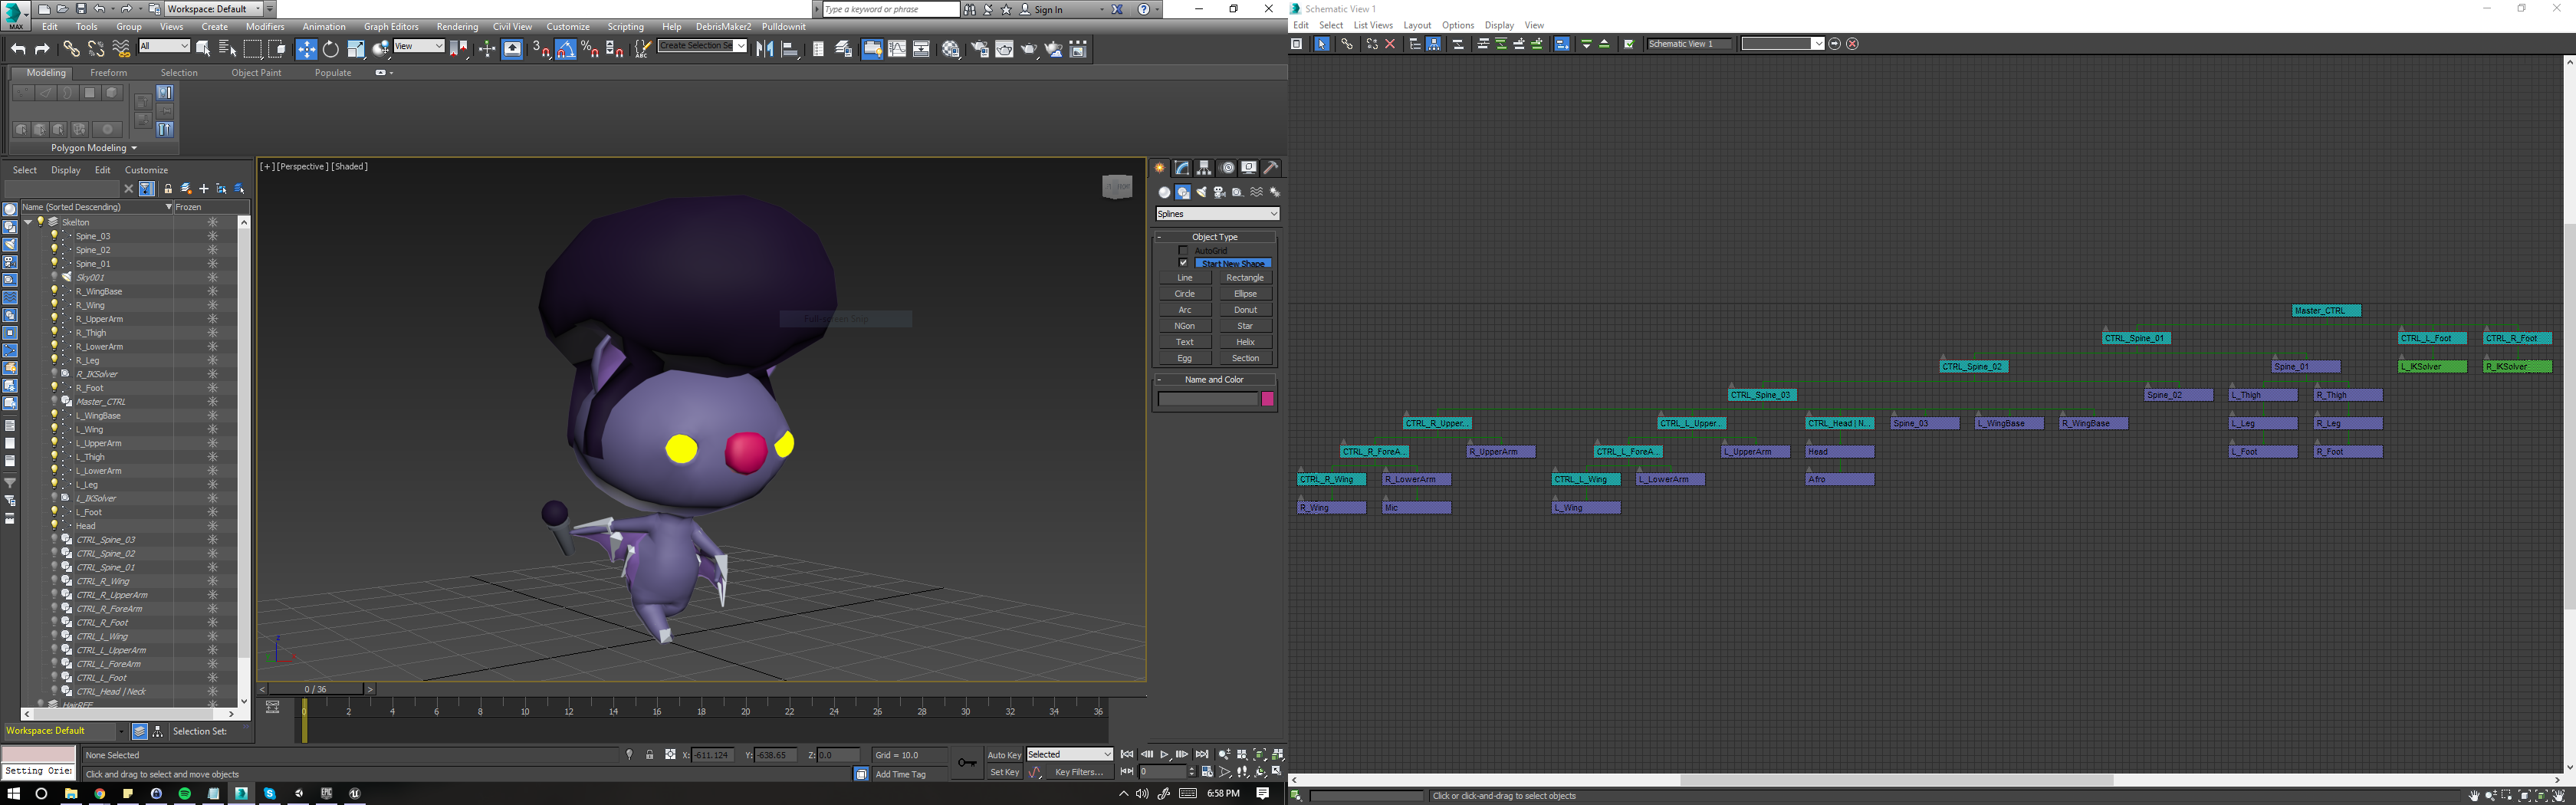 3DS Max Export | Animations to Unity & UE4 Errors   How do I